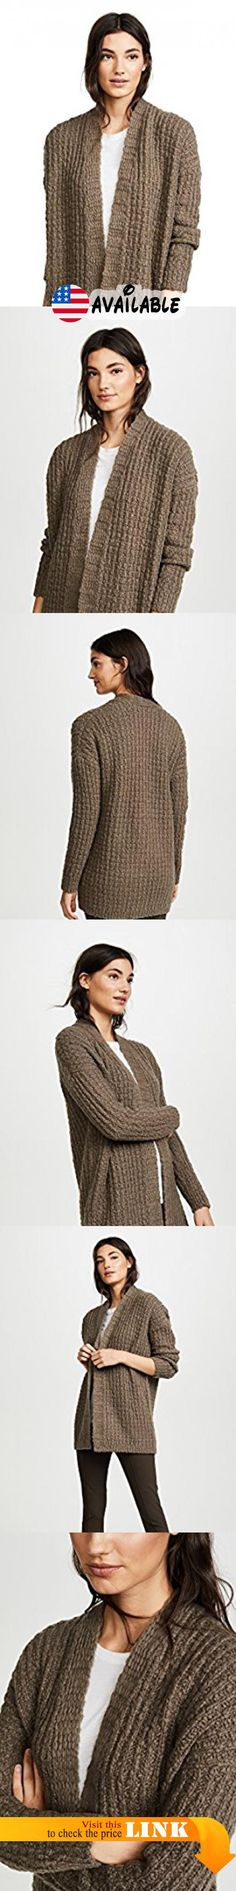 B075XNYCZD : Vince Women's Waffle Stitch Cardigan Mud Large. Chunky waffle knit. 68% wool/22% polyamide/10% cashmere. Hand wash or dry clean. Width 28.25in / 72cm from shoulder